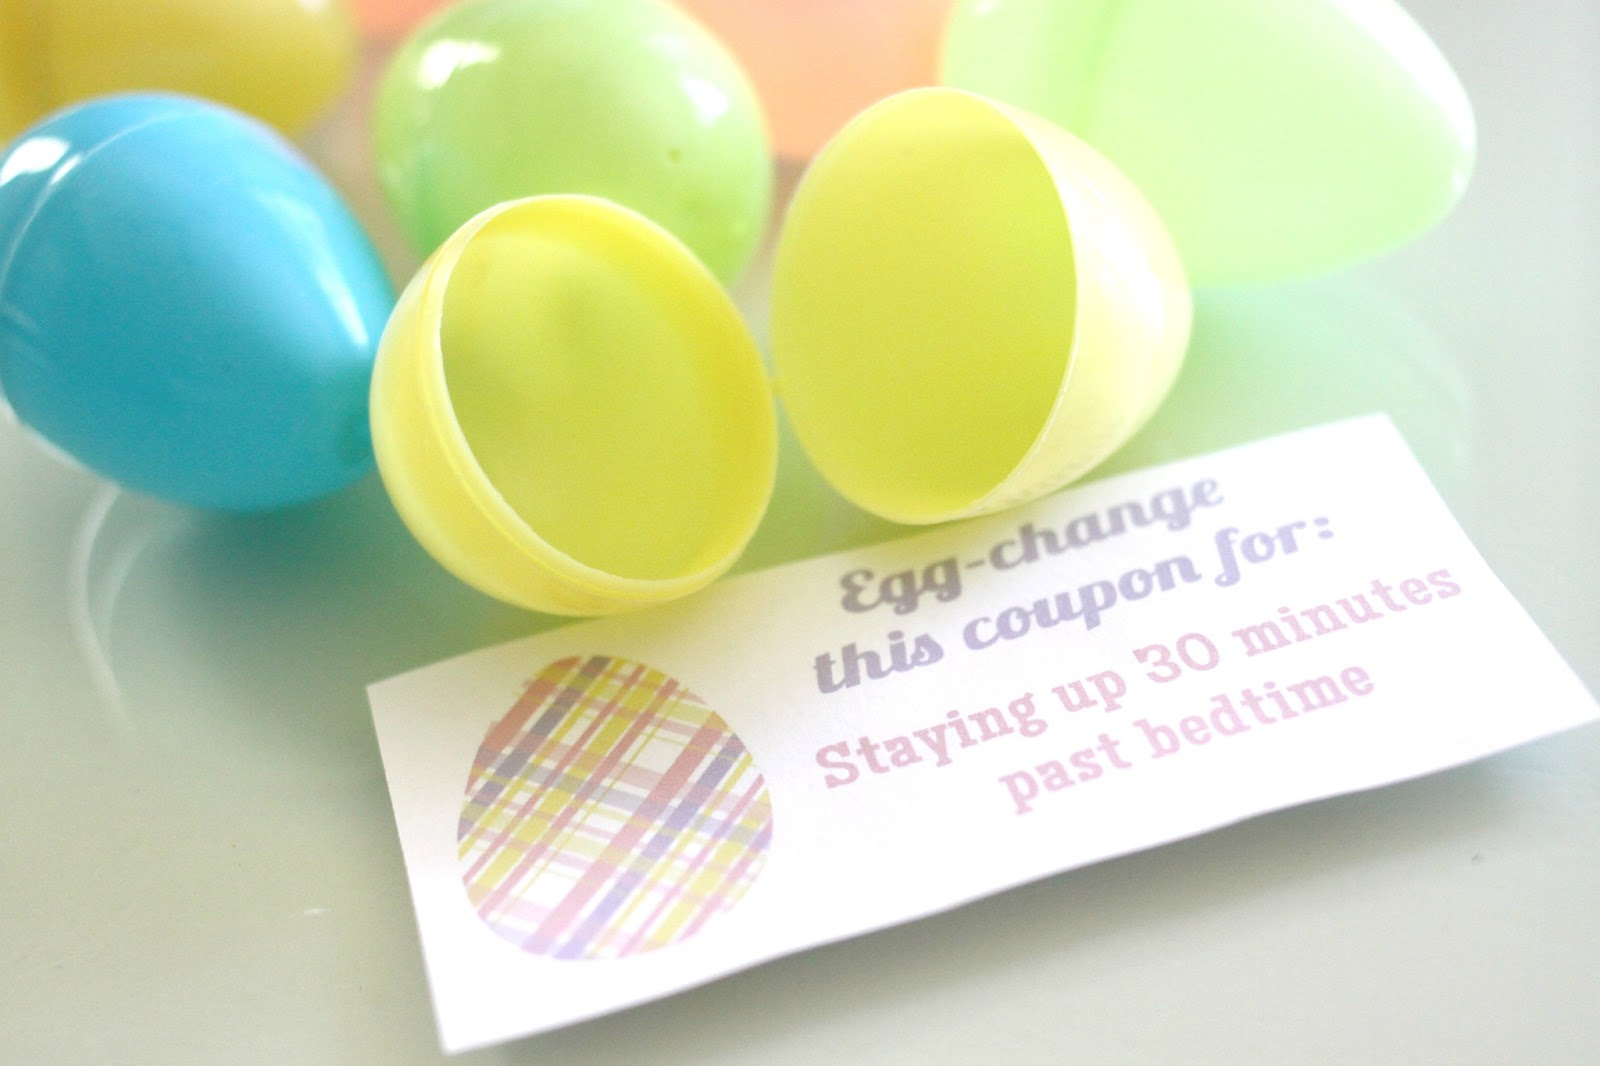 This is a picture of Priceless Egg Coupons Printable